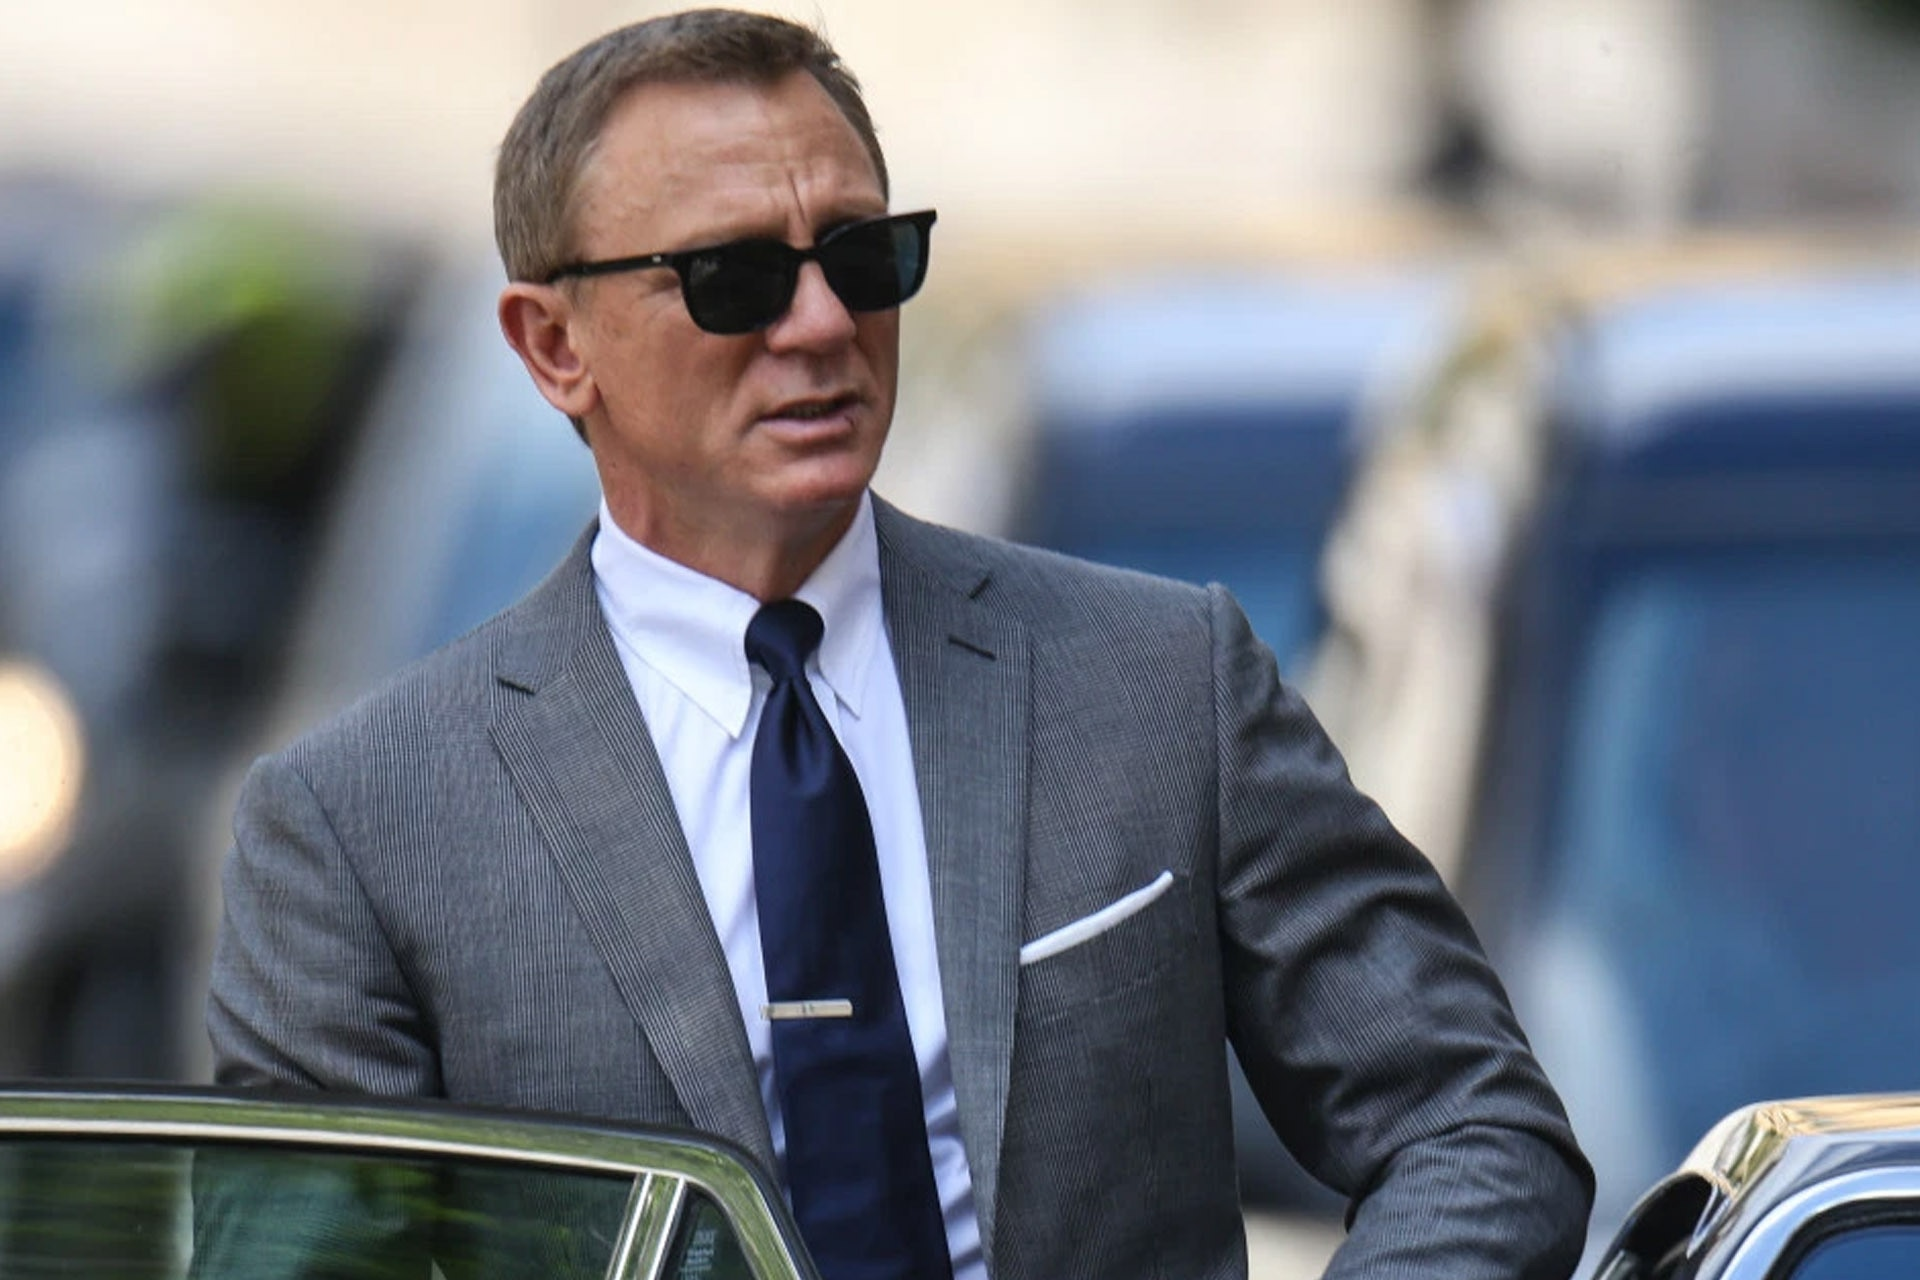 The New James Bond Movie Isn't Out Yet—But We Already Know 007's Favorite New Sunglasses